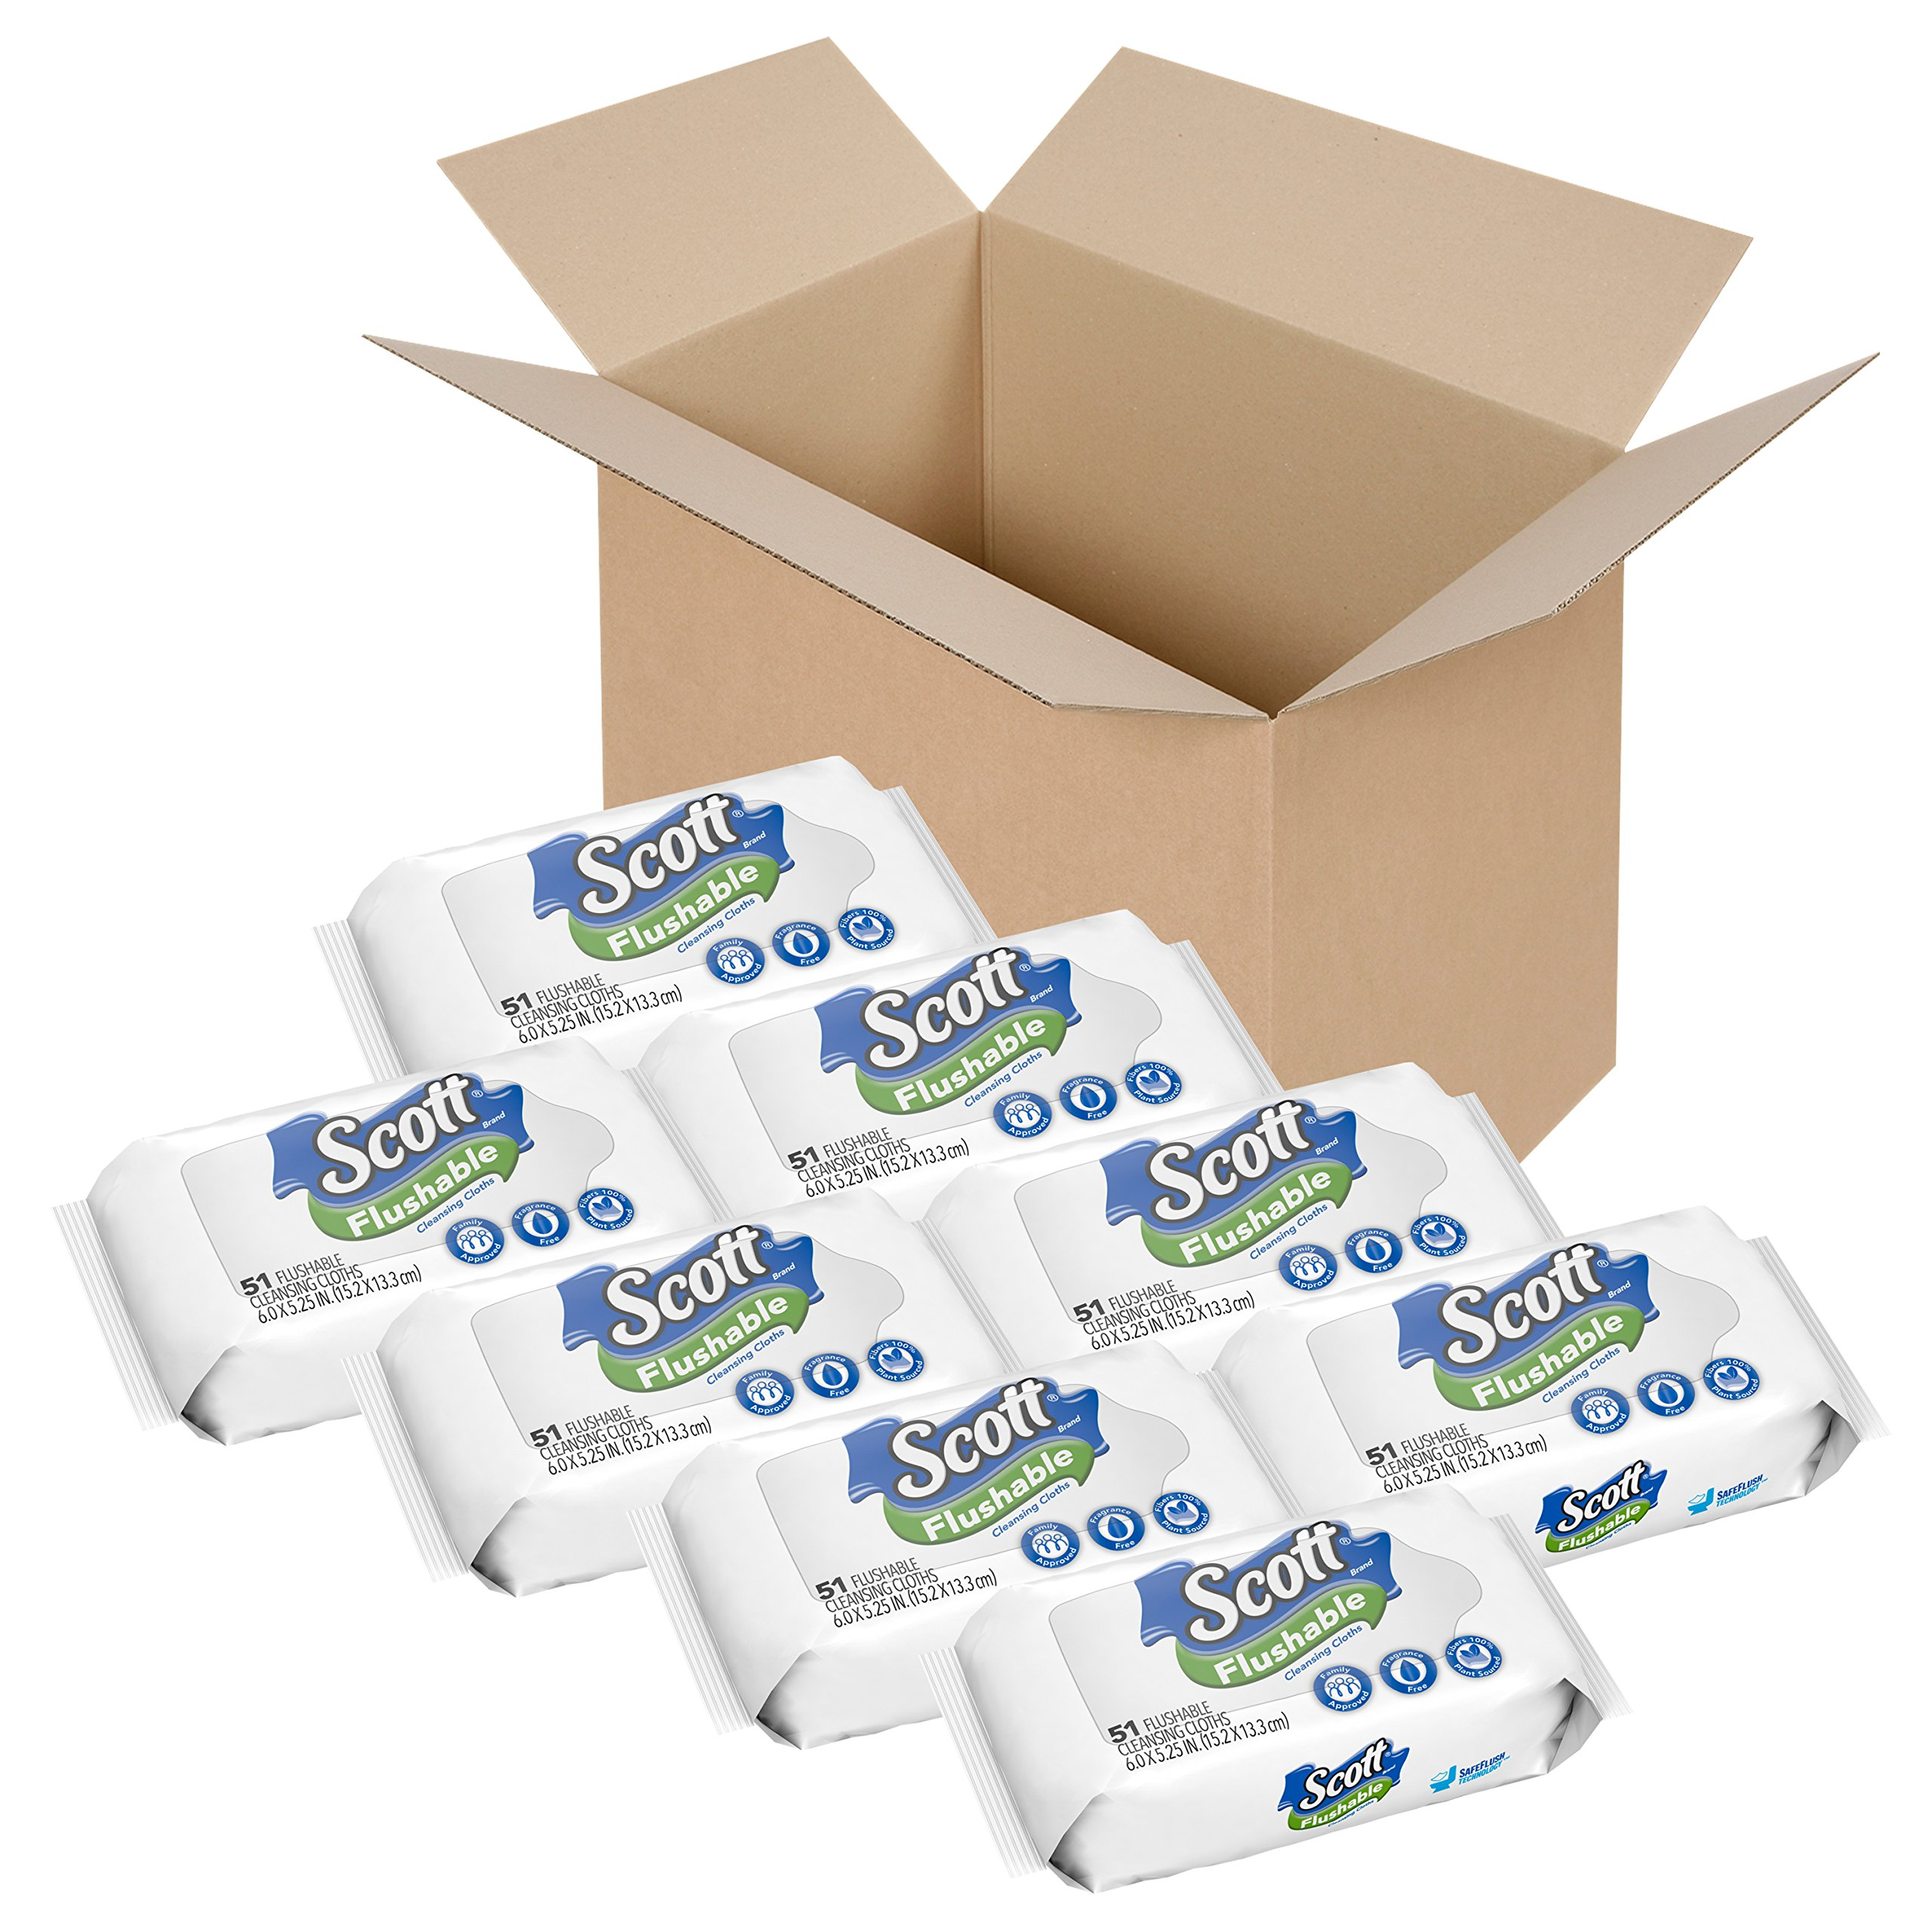 Scott Flushable Wipes, No Added Fragrance, 8 Soft Packs with 408 Wet Wipes Total (Pack May Vary) by Scott (Image #1)